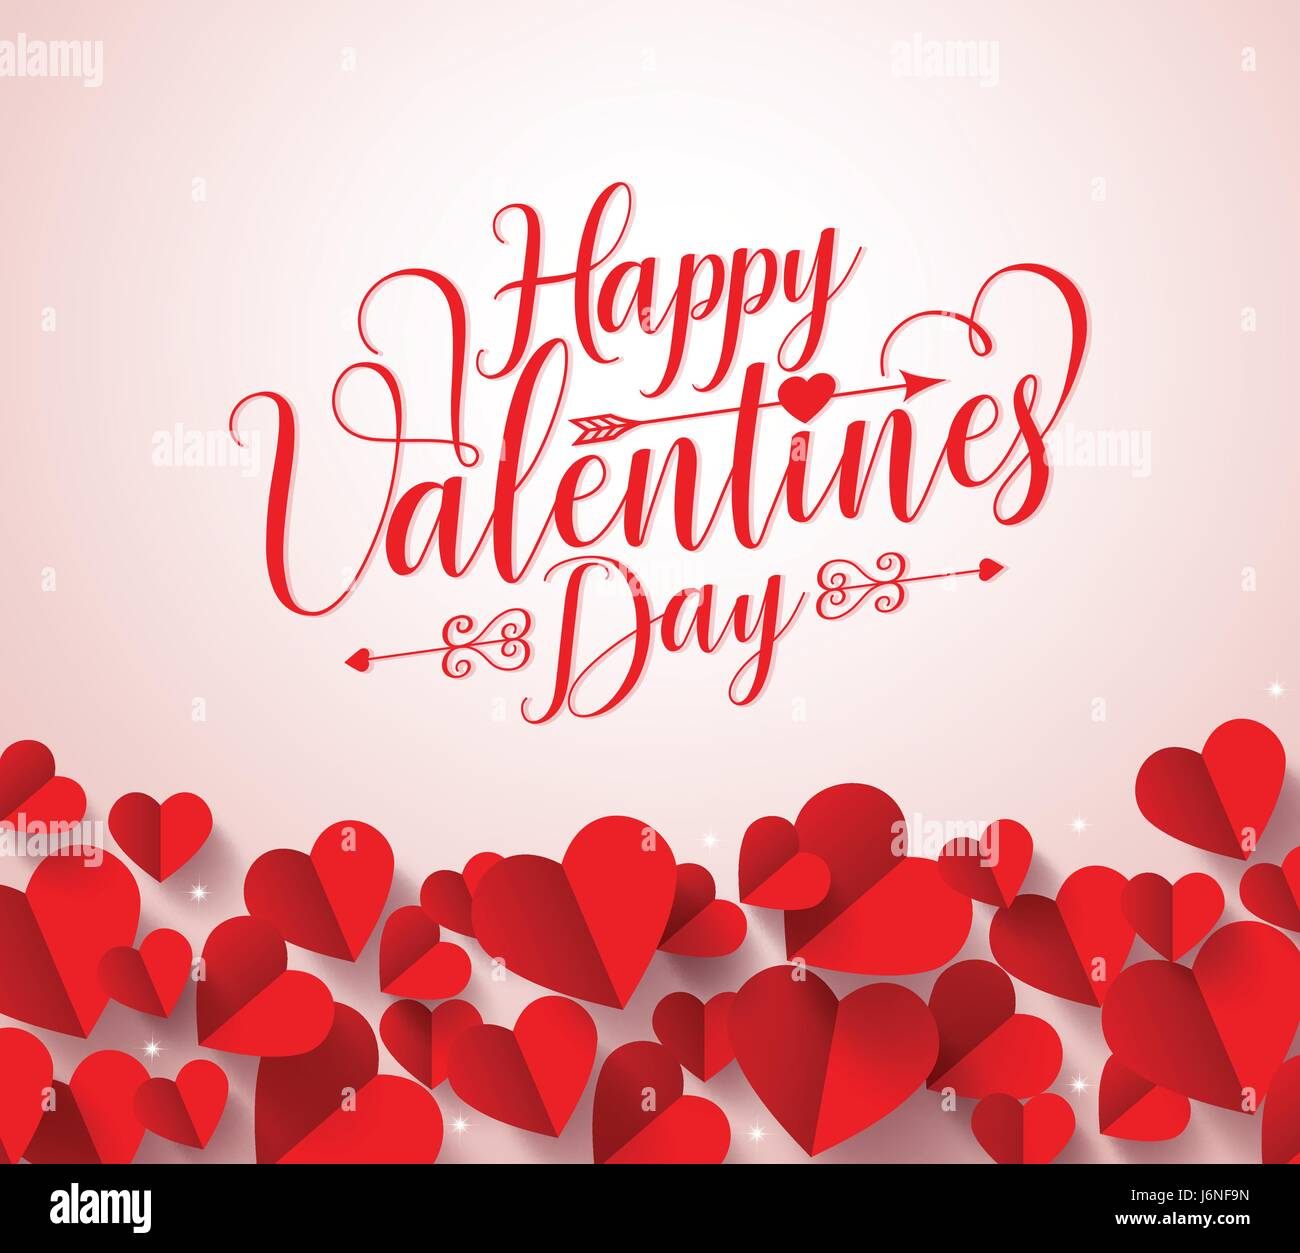 Happy Valentines Day Greetings Typography In White Background Vector